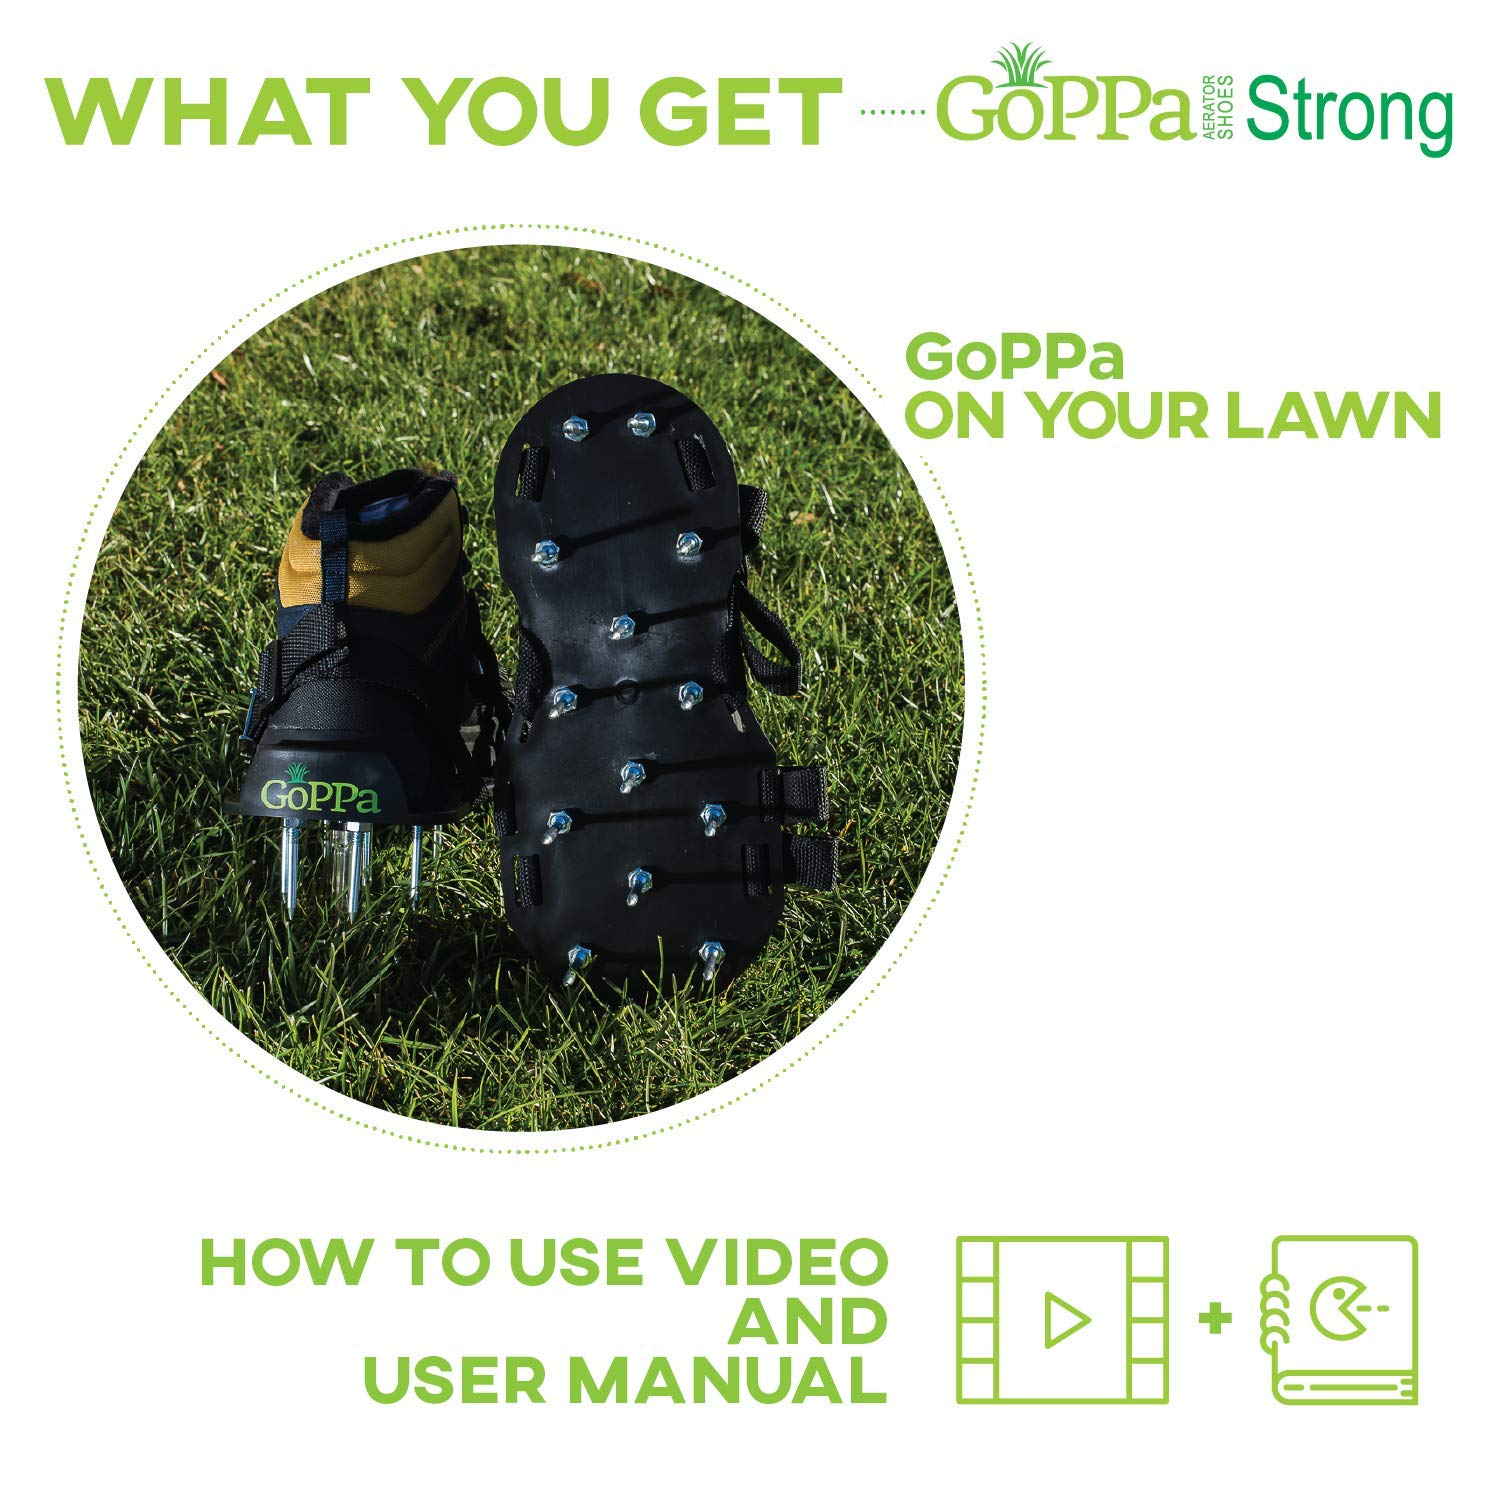 GoPPa Lawn Aerator Shoes – Heavy Duty Lawn Aerator Sandal, You only FIT Once. Ready for aerating Your Yard, Lawn, Roots & Grass – Strong Design by GoPPa (Image #8)